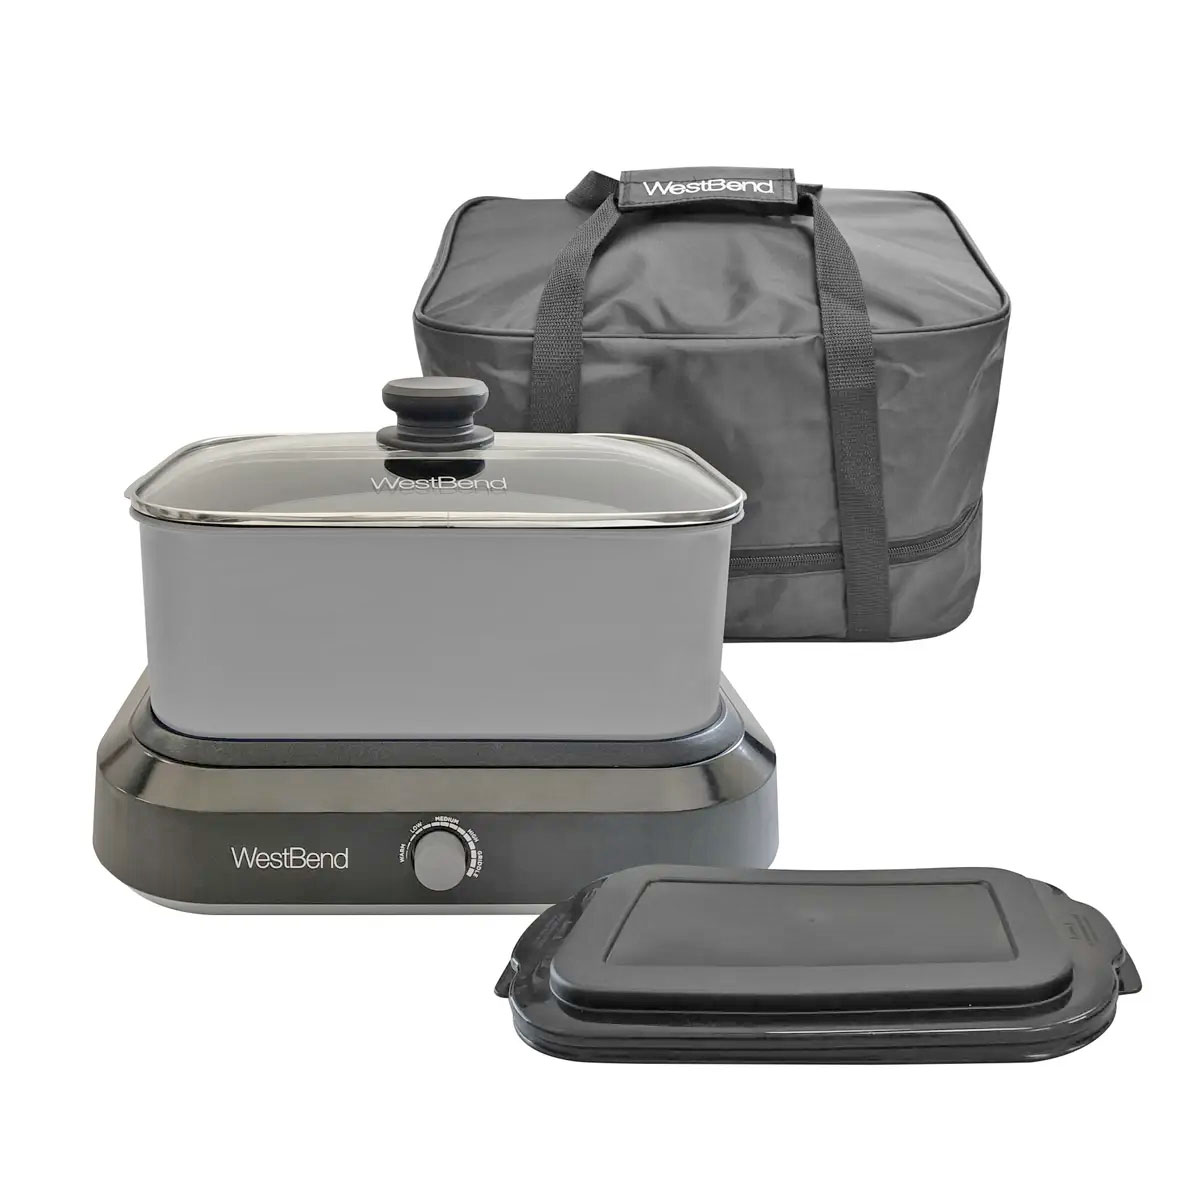 5-Quart Oblong Slow Cooker Price: $55.95